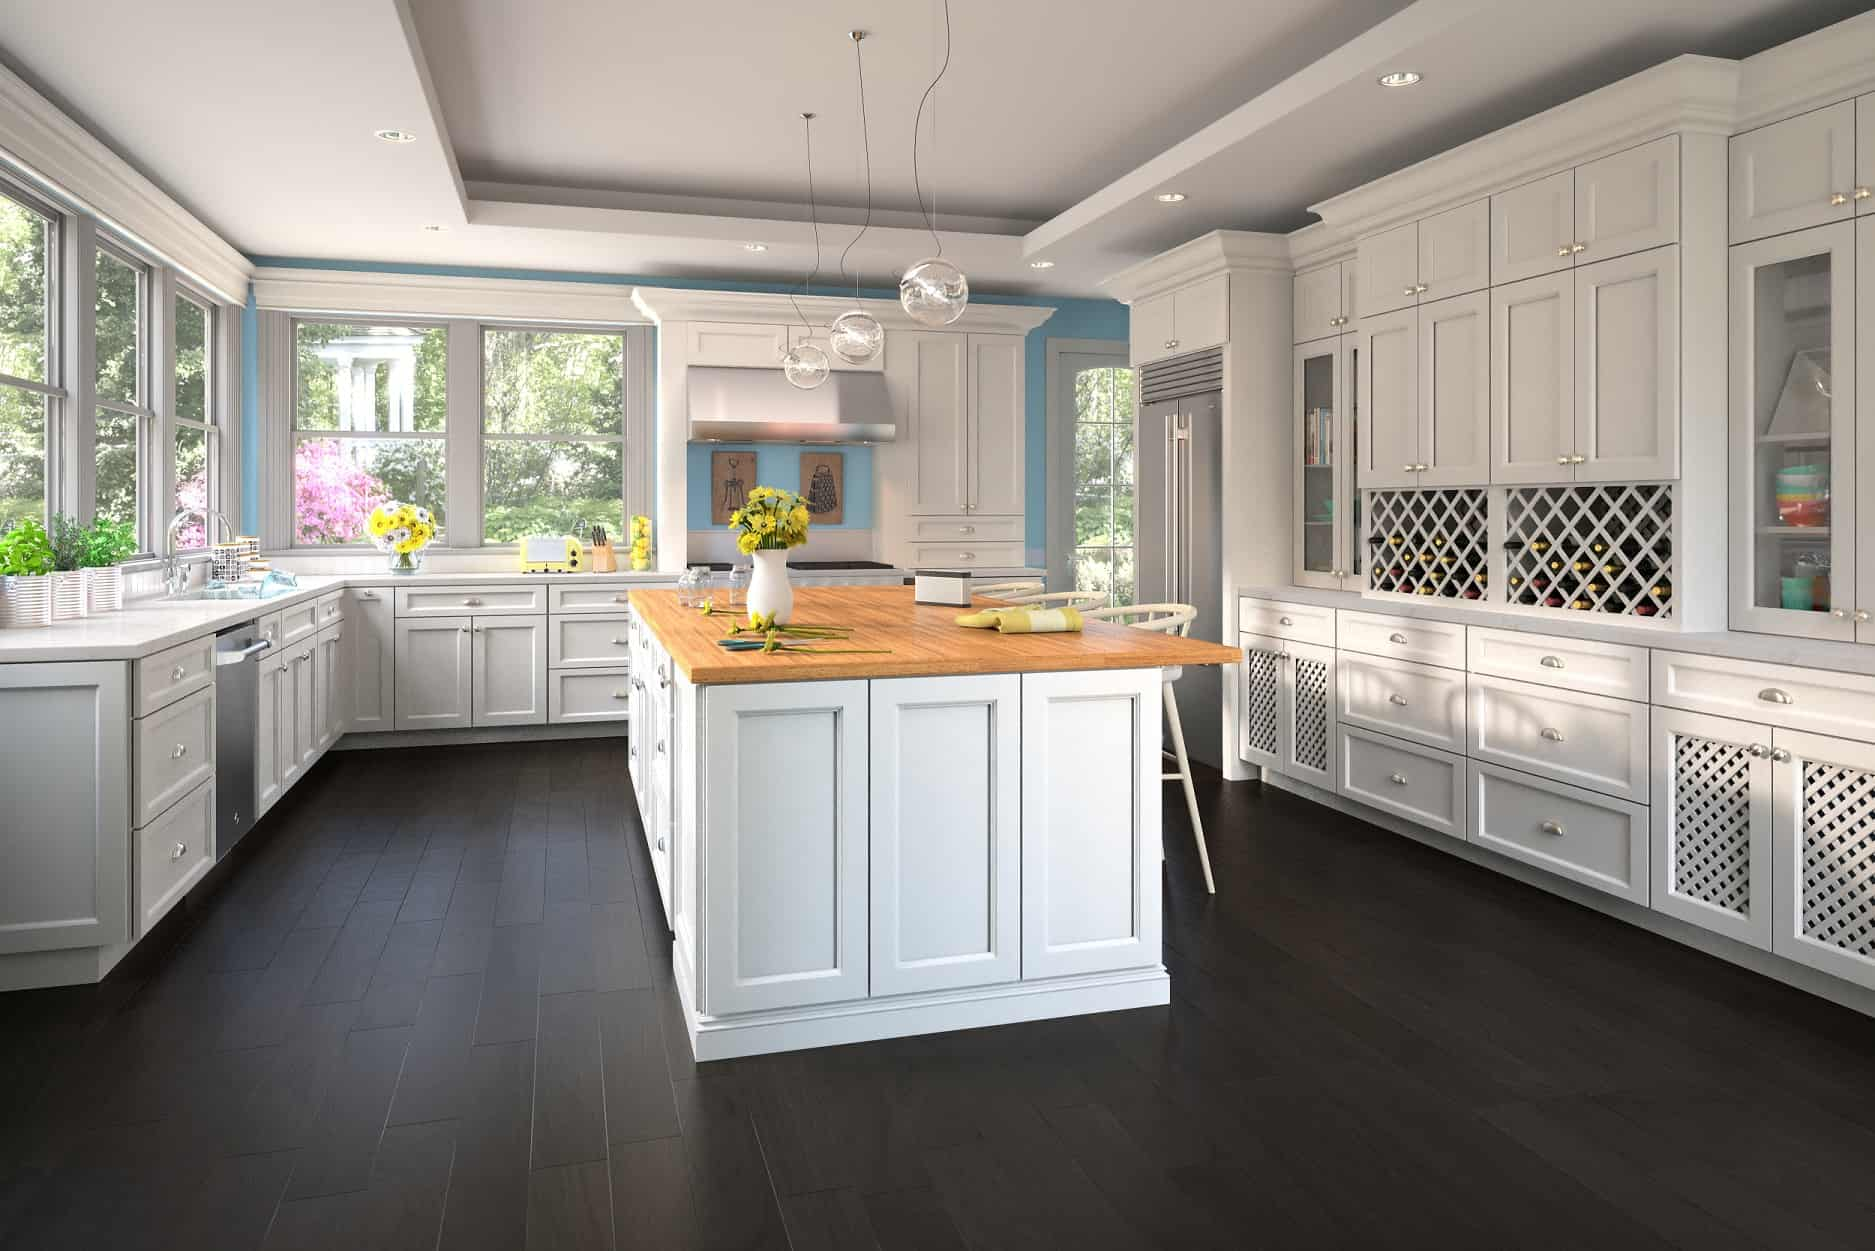 Refinishing Old Kitchen Cabinets What Is The Potential Cost To Refinish Your Old Kitchen Cabinets